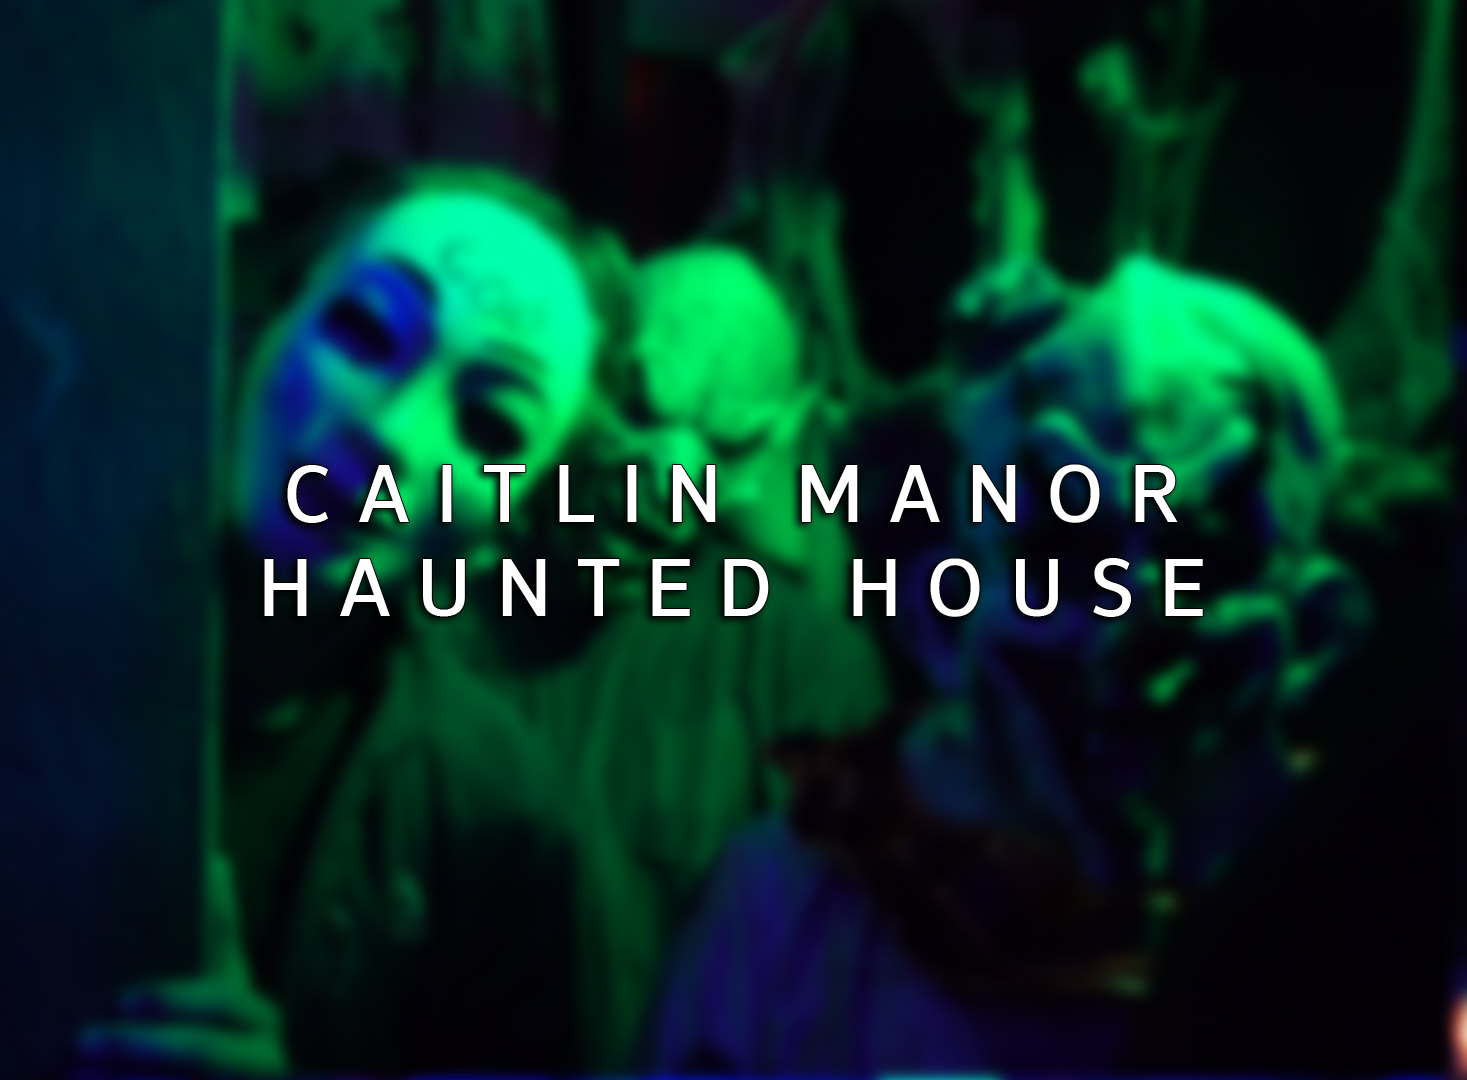 Caitlin Manor Haunted House 2019